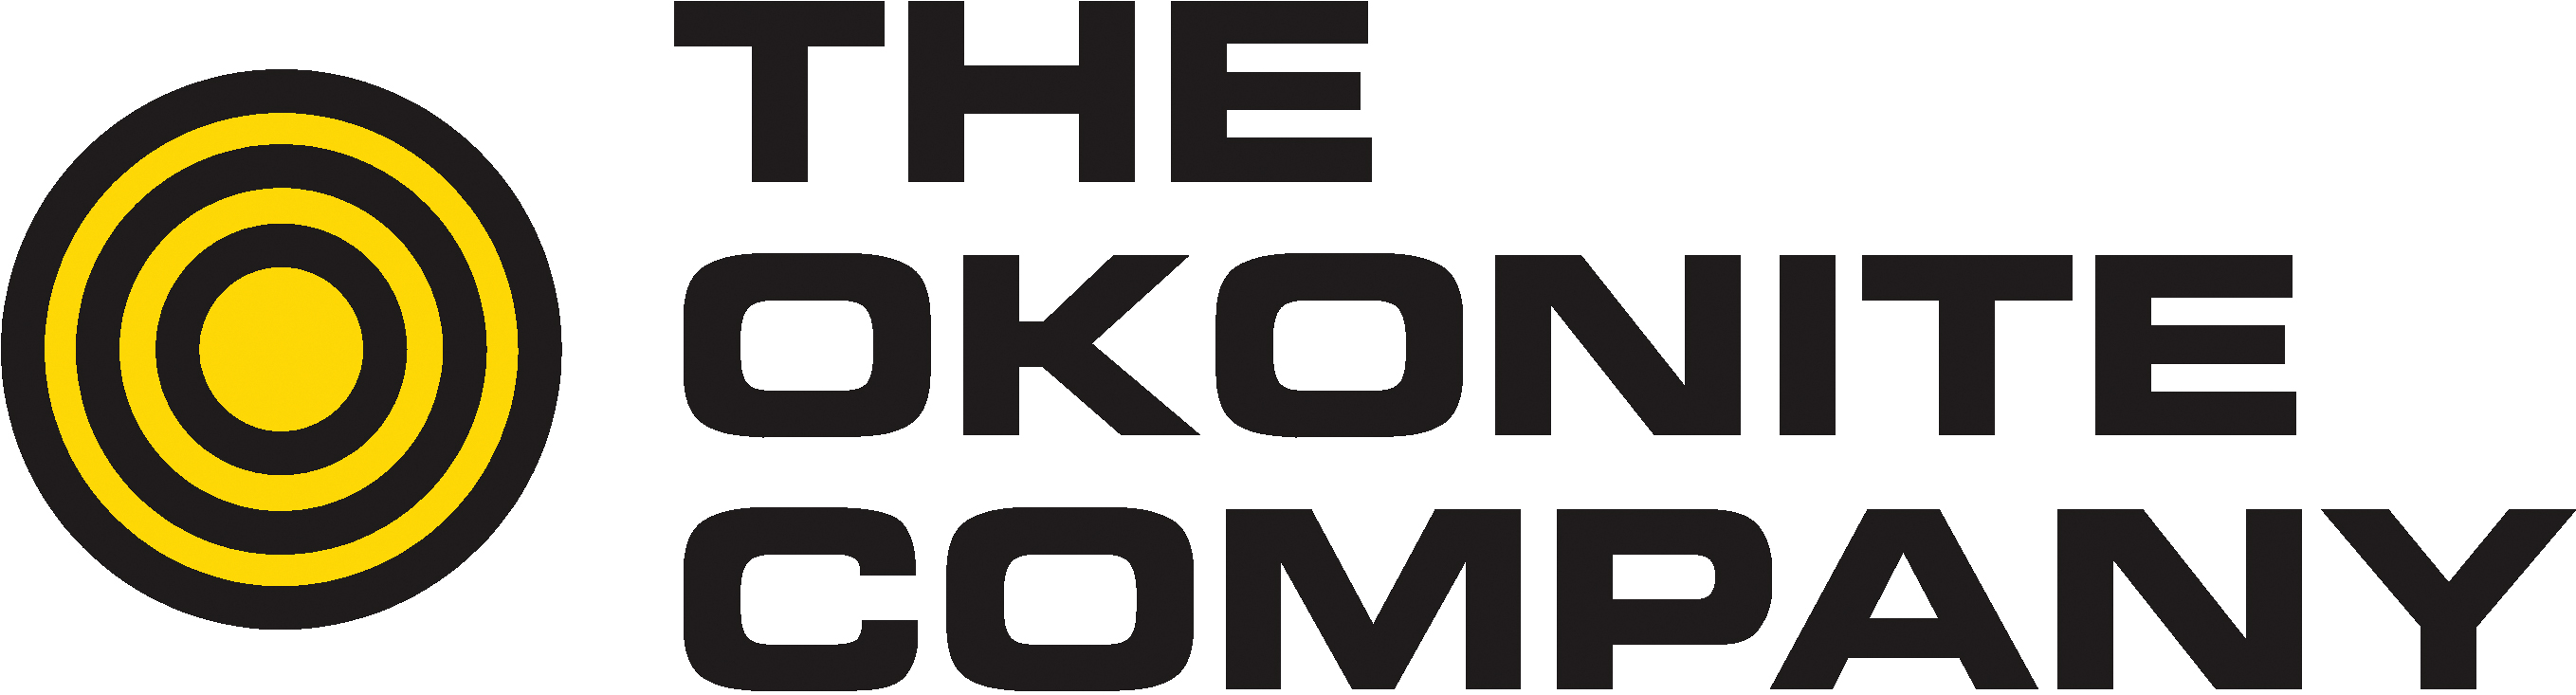 The Okonite Company Hi Res logo